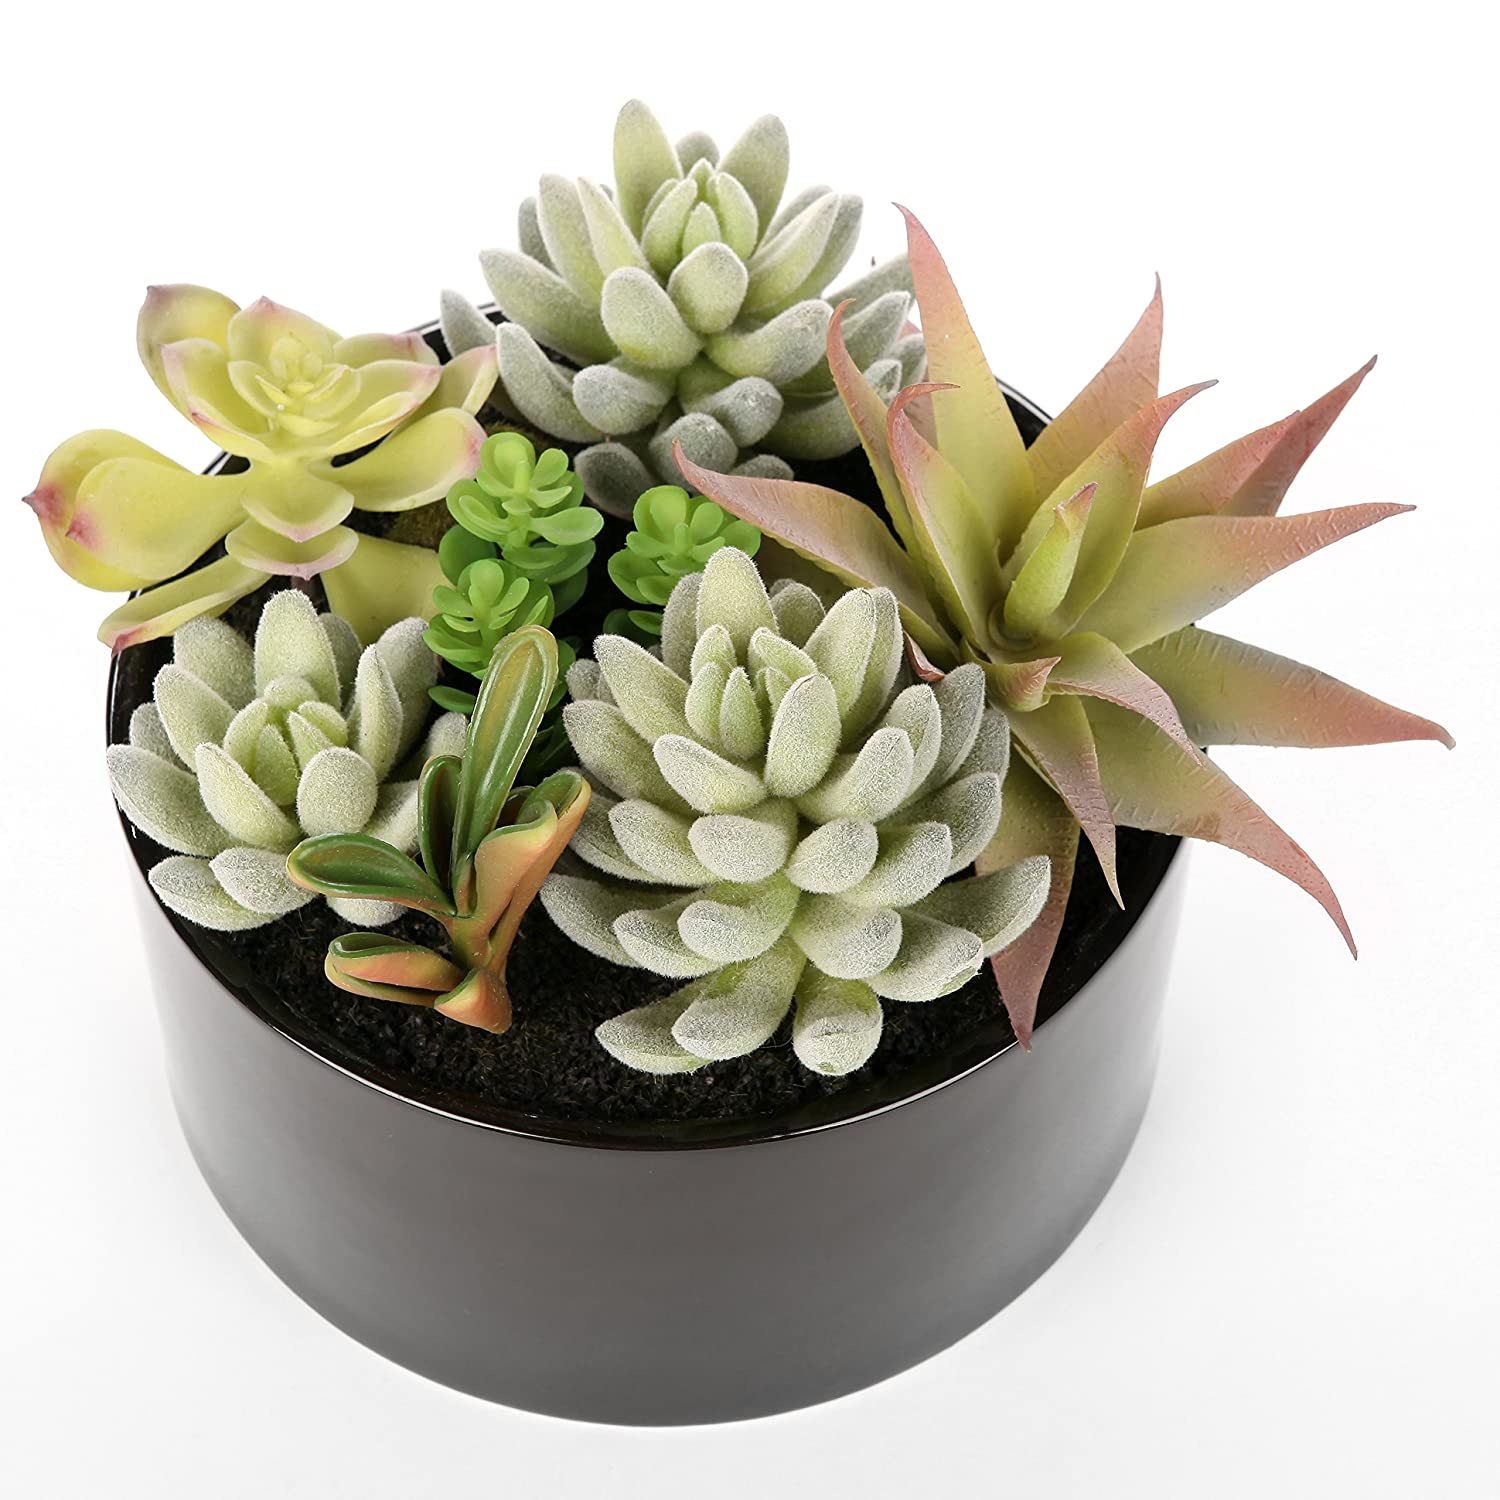 Plantas artificiales decorativas redondas de envio - Plantas artificiales decorativas ...